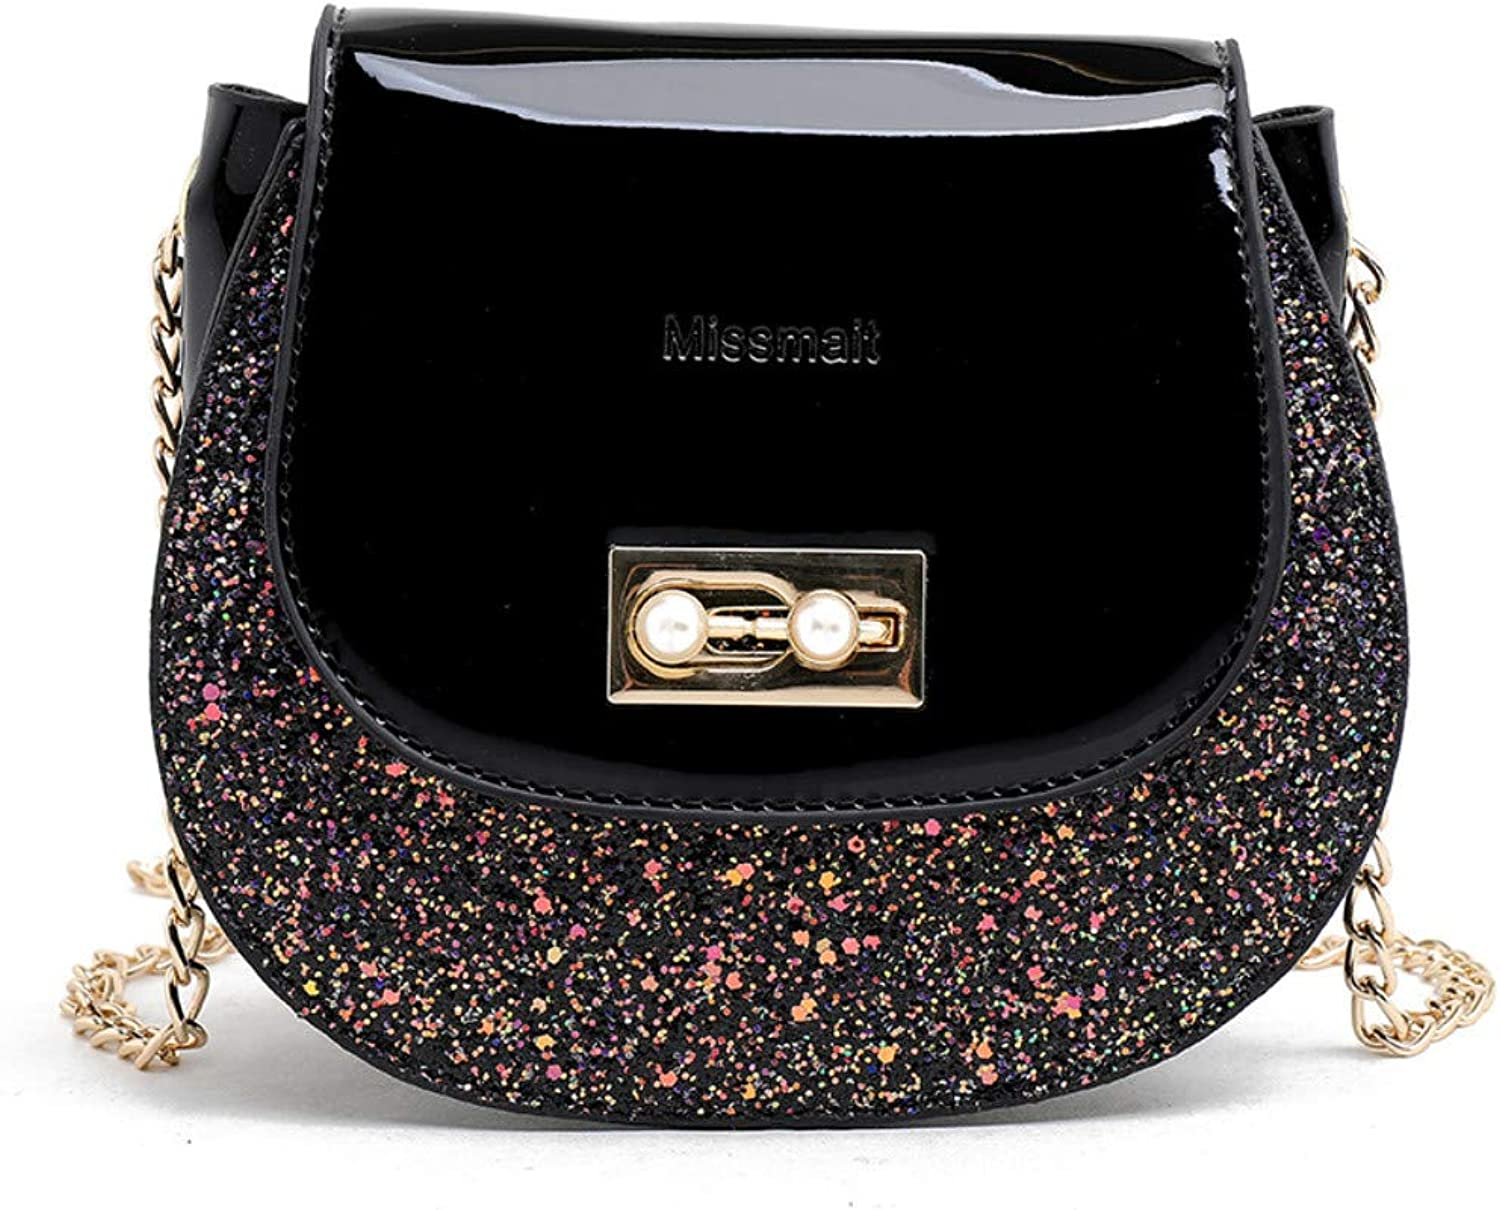 CLEBAO Saddle, Trend, Korean, Wild, Crossbody, Chain, one Shoulder, Foreign, Mini, Coin Purse, Black, M